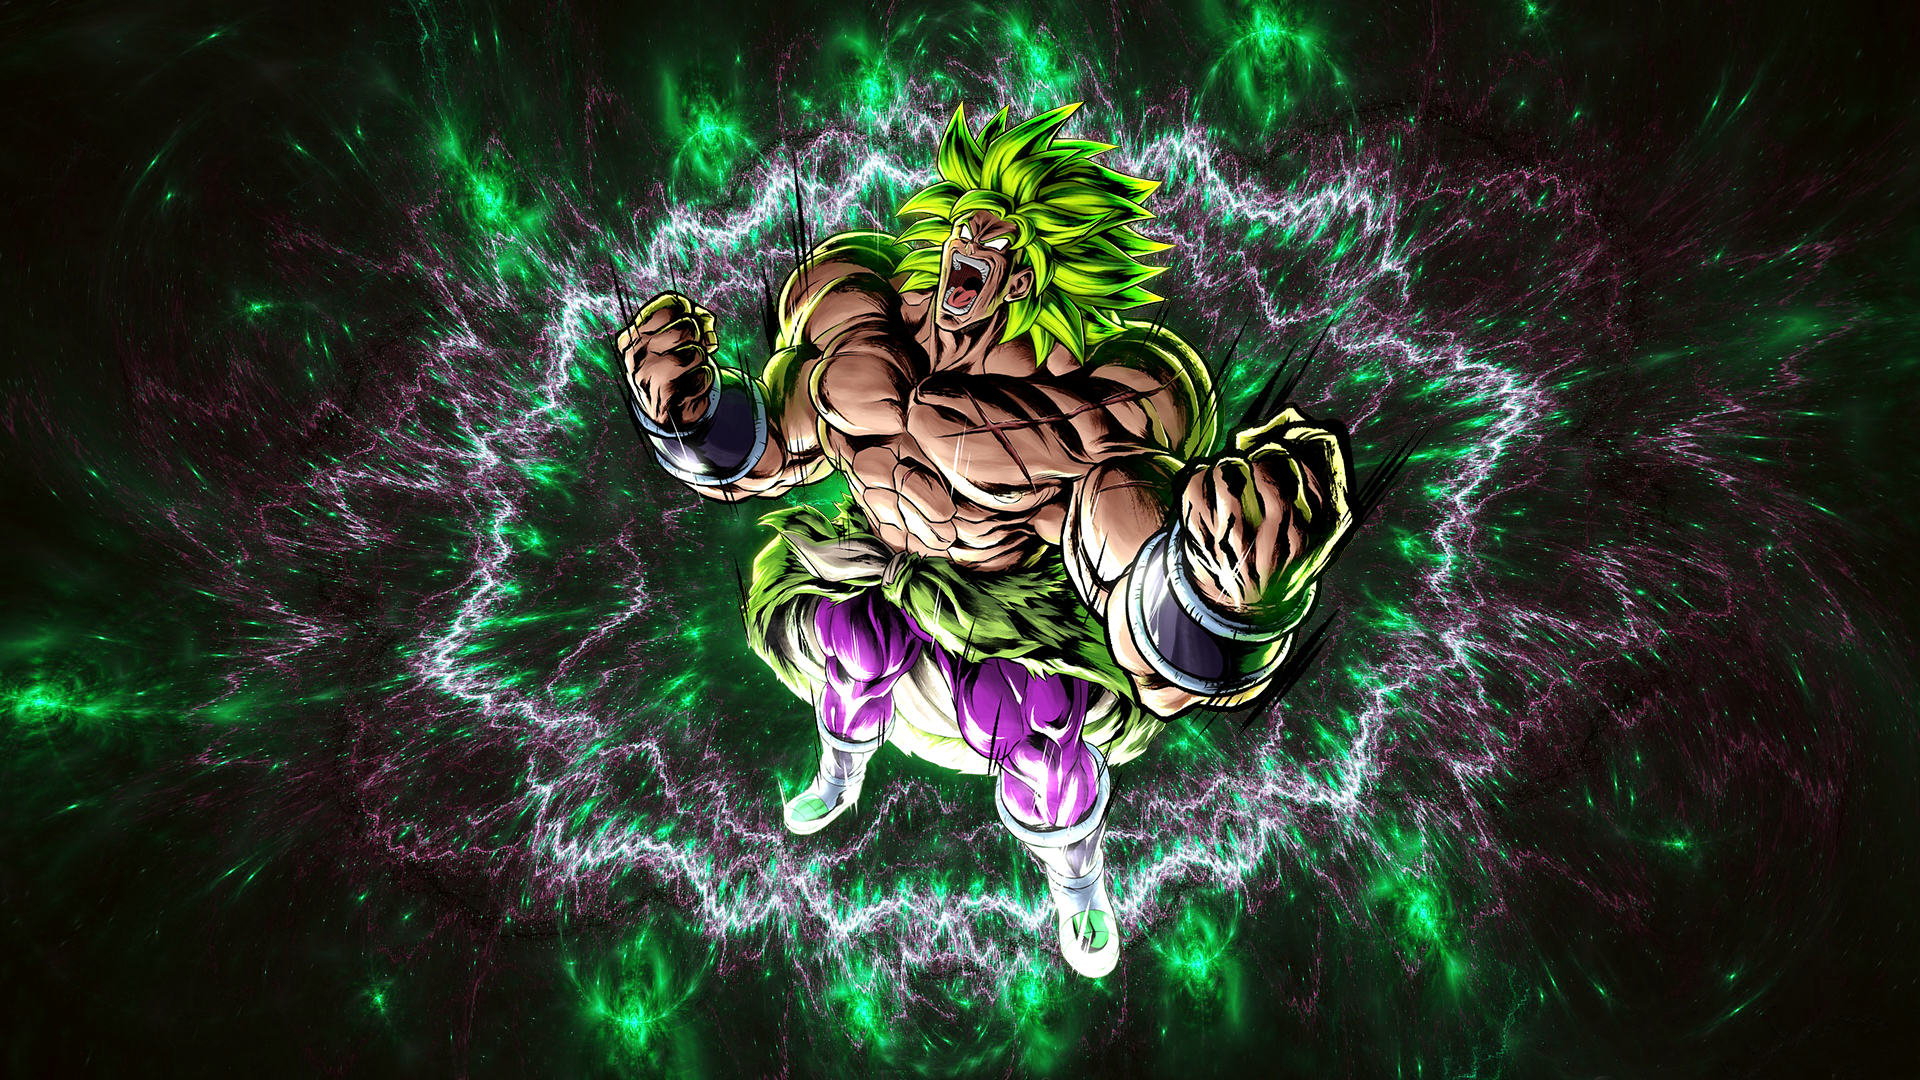 Broly Hd Wallpaper Background Image 1920x1080 Id 986002 Wallpaper Abyss